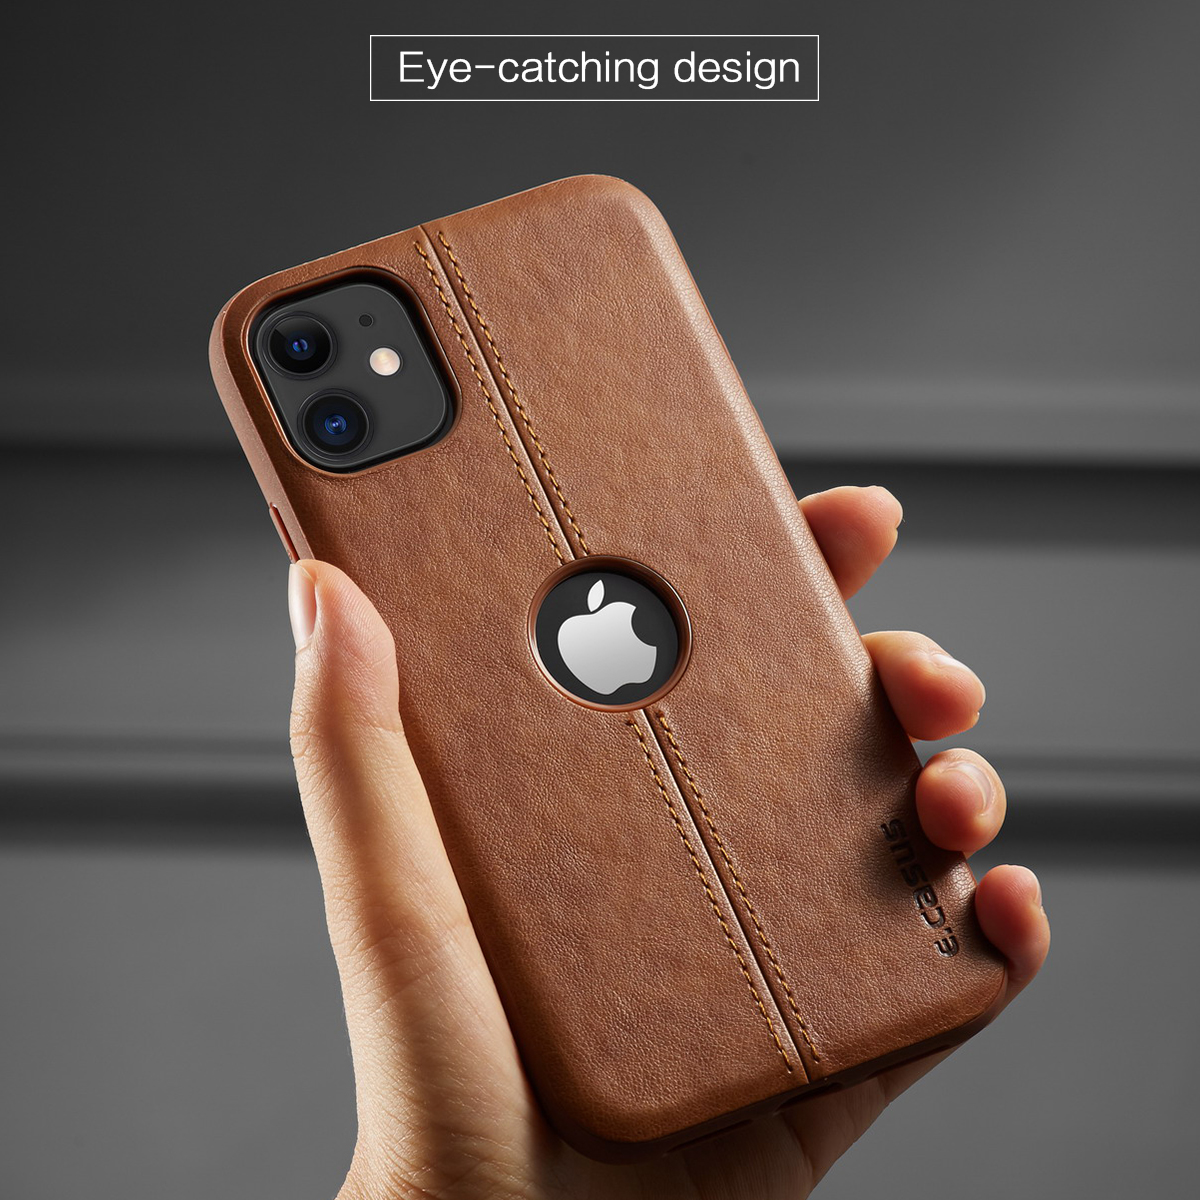 H538dfc05f1c047c8a04a5f7e2a55e13bN For iPhone 11 11 Pro 11 Pro Max Case New SLIM Luxury Leather Back Case Cover For iPhone 11 XR XS MAX 8 7 6 Plus Shockproof Case